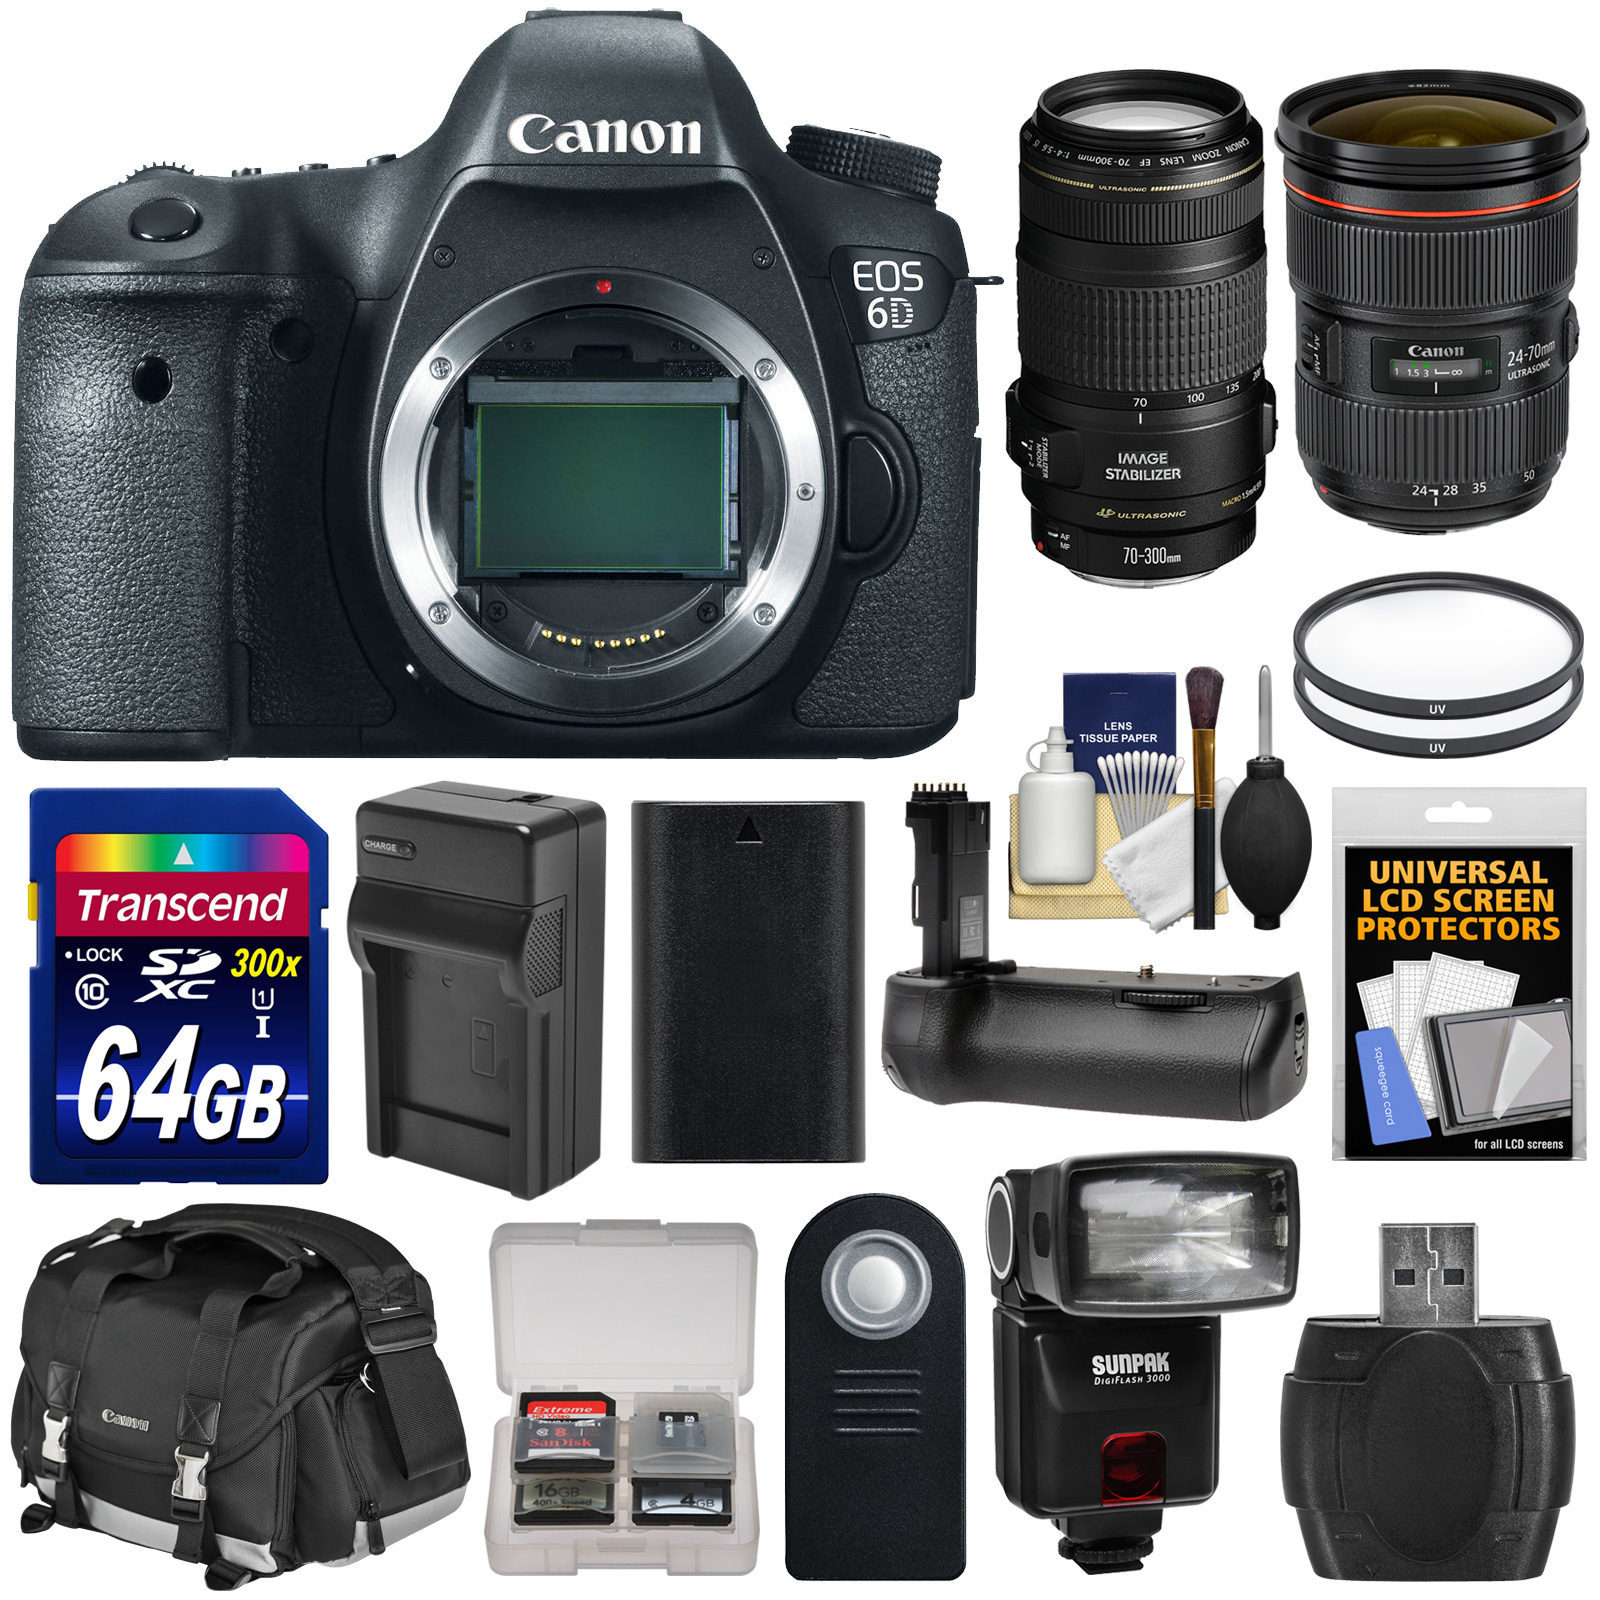 Canon EOS 6D Digital SLR Camera Body with 24-70mm f 2.8 L II & 70-300mm IS Lenses + 64GB Card + Case + Flash +... by Canon